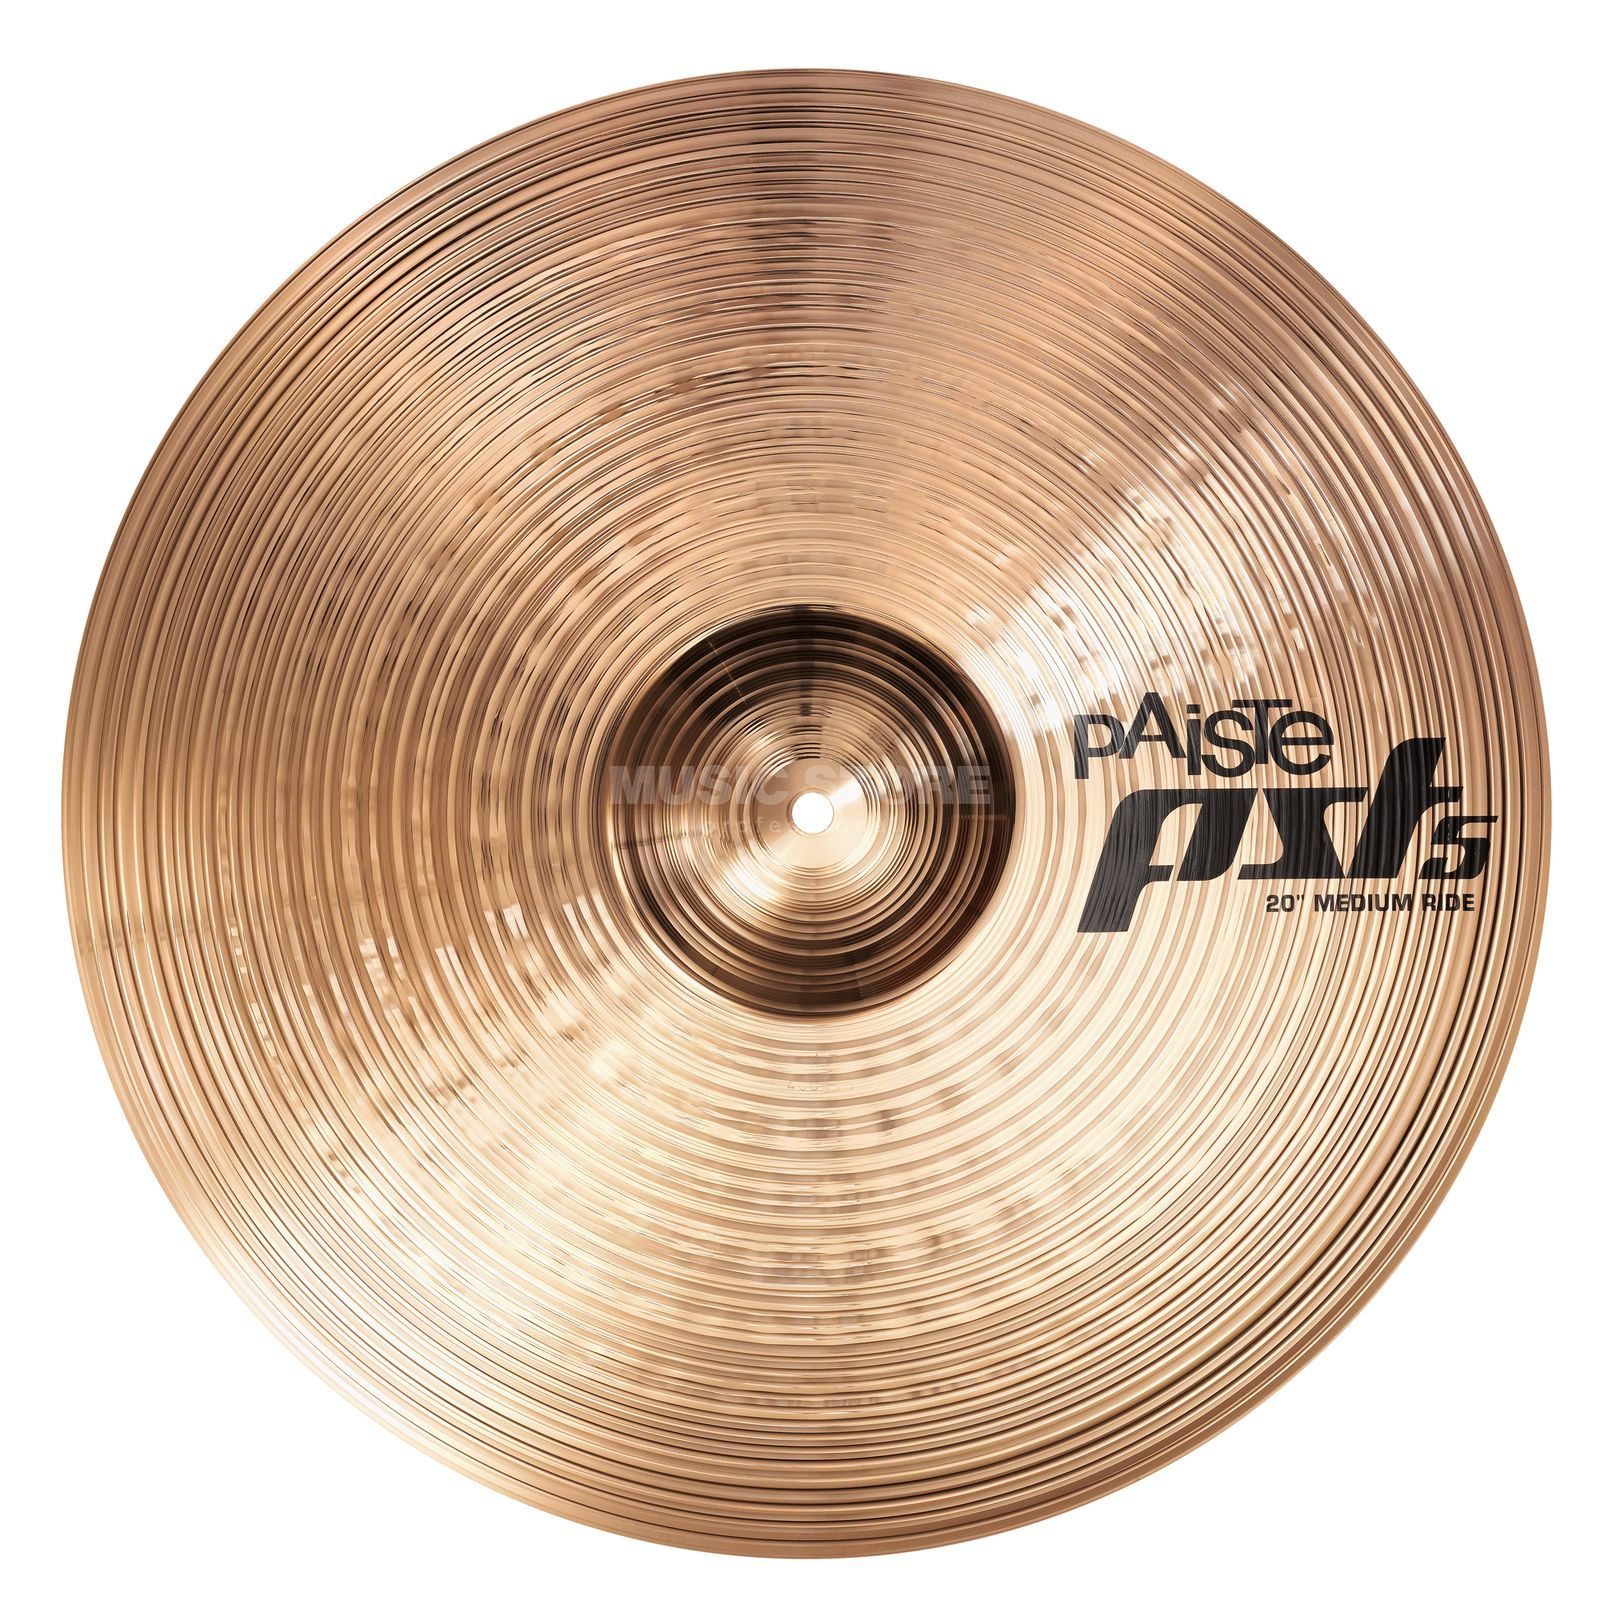 "Paiste PST5 Medium Ride 20"", Version 2015 Produktbillede"